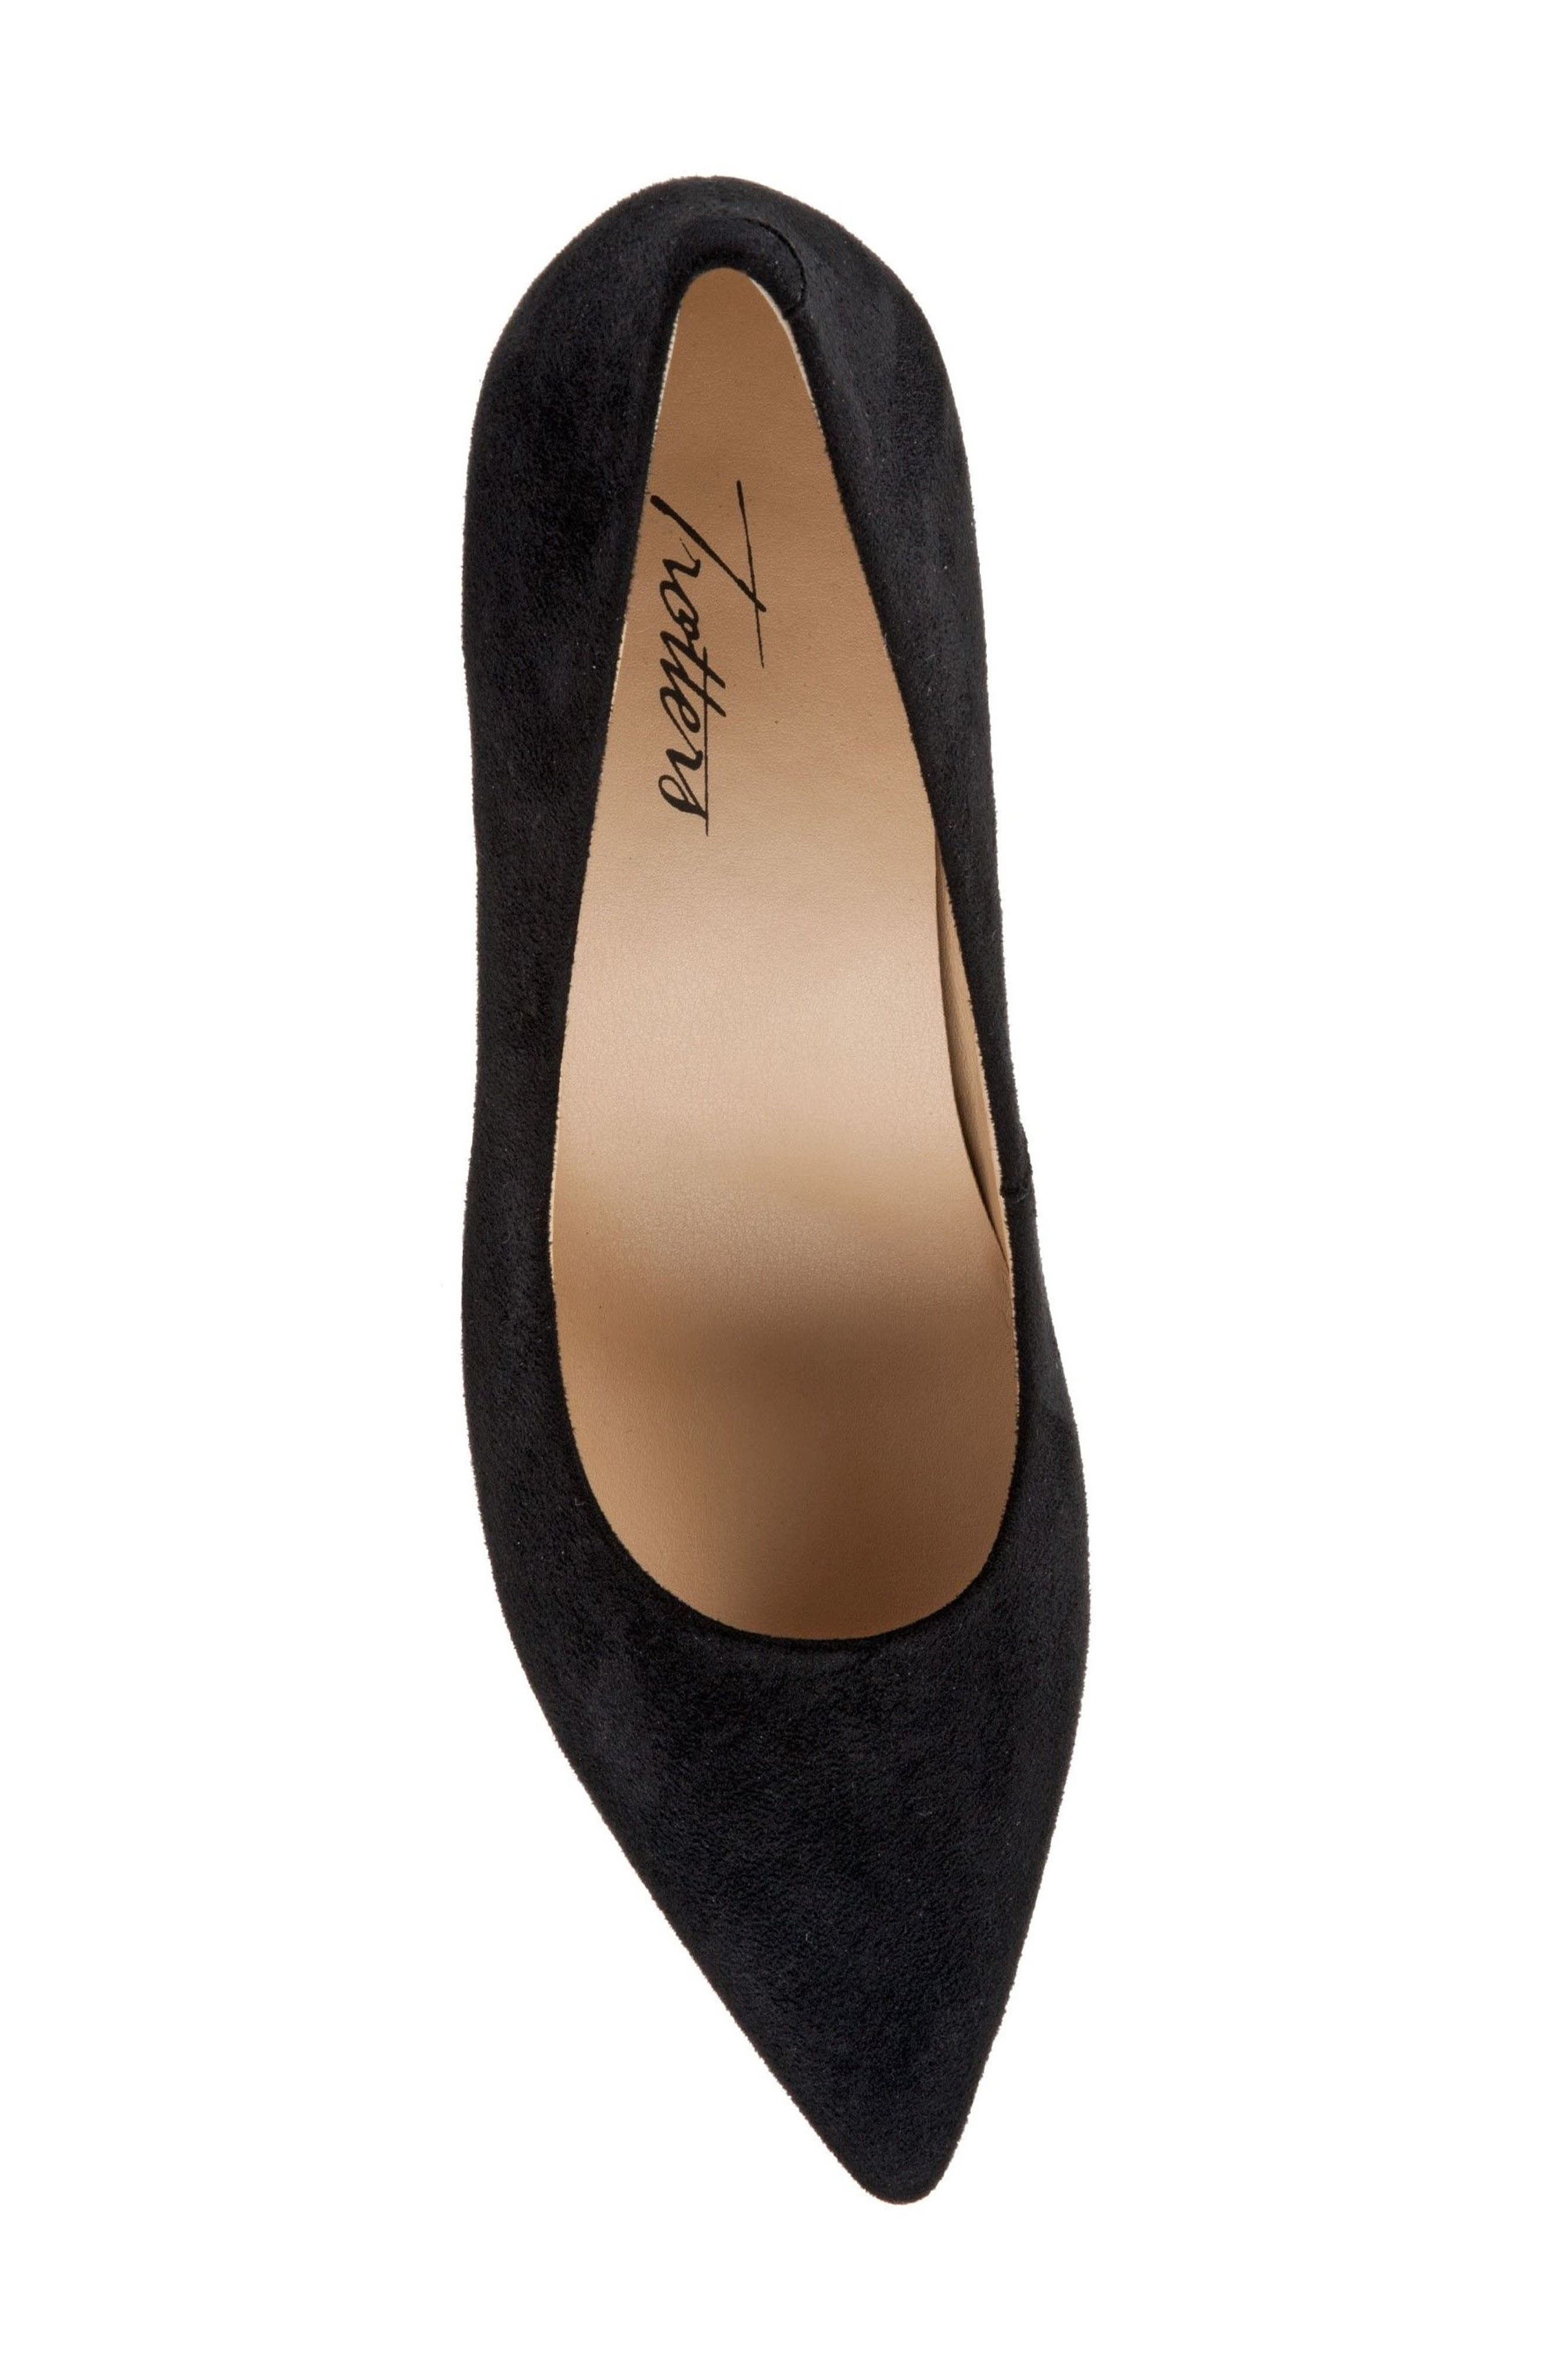 Noelle Pointy Toe Pump,                             Alternate thumbnail 5, color,                             BLACK FABRIC